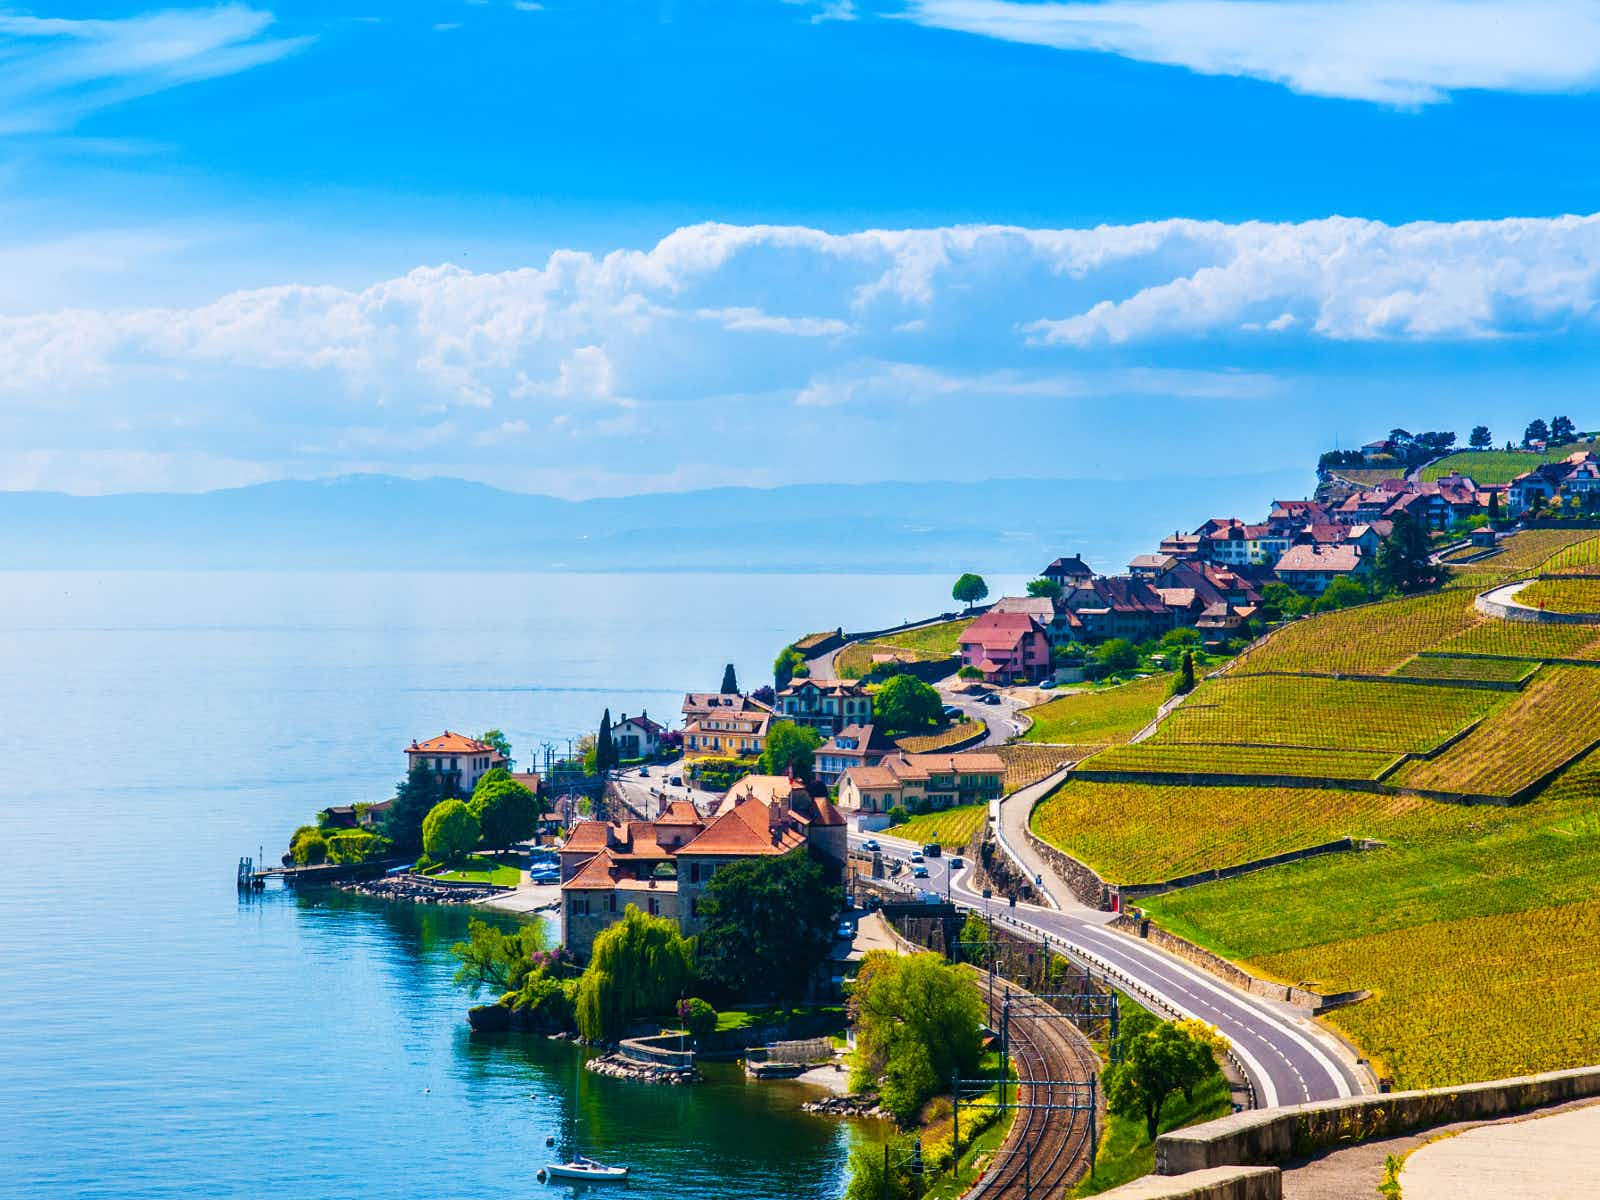 The World Heritage–listed vineyards of Lavaux set against Lake Geneva © PixHound / Shutterstock